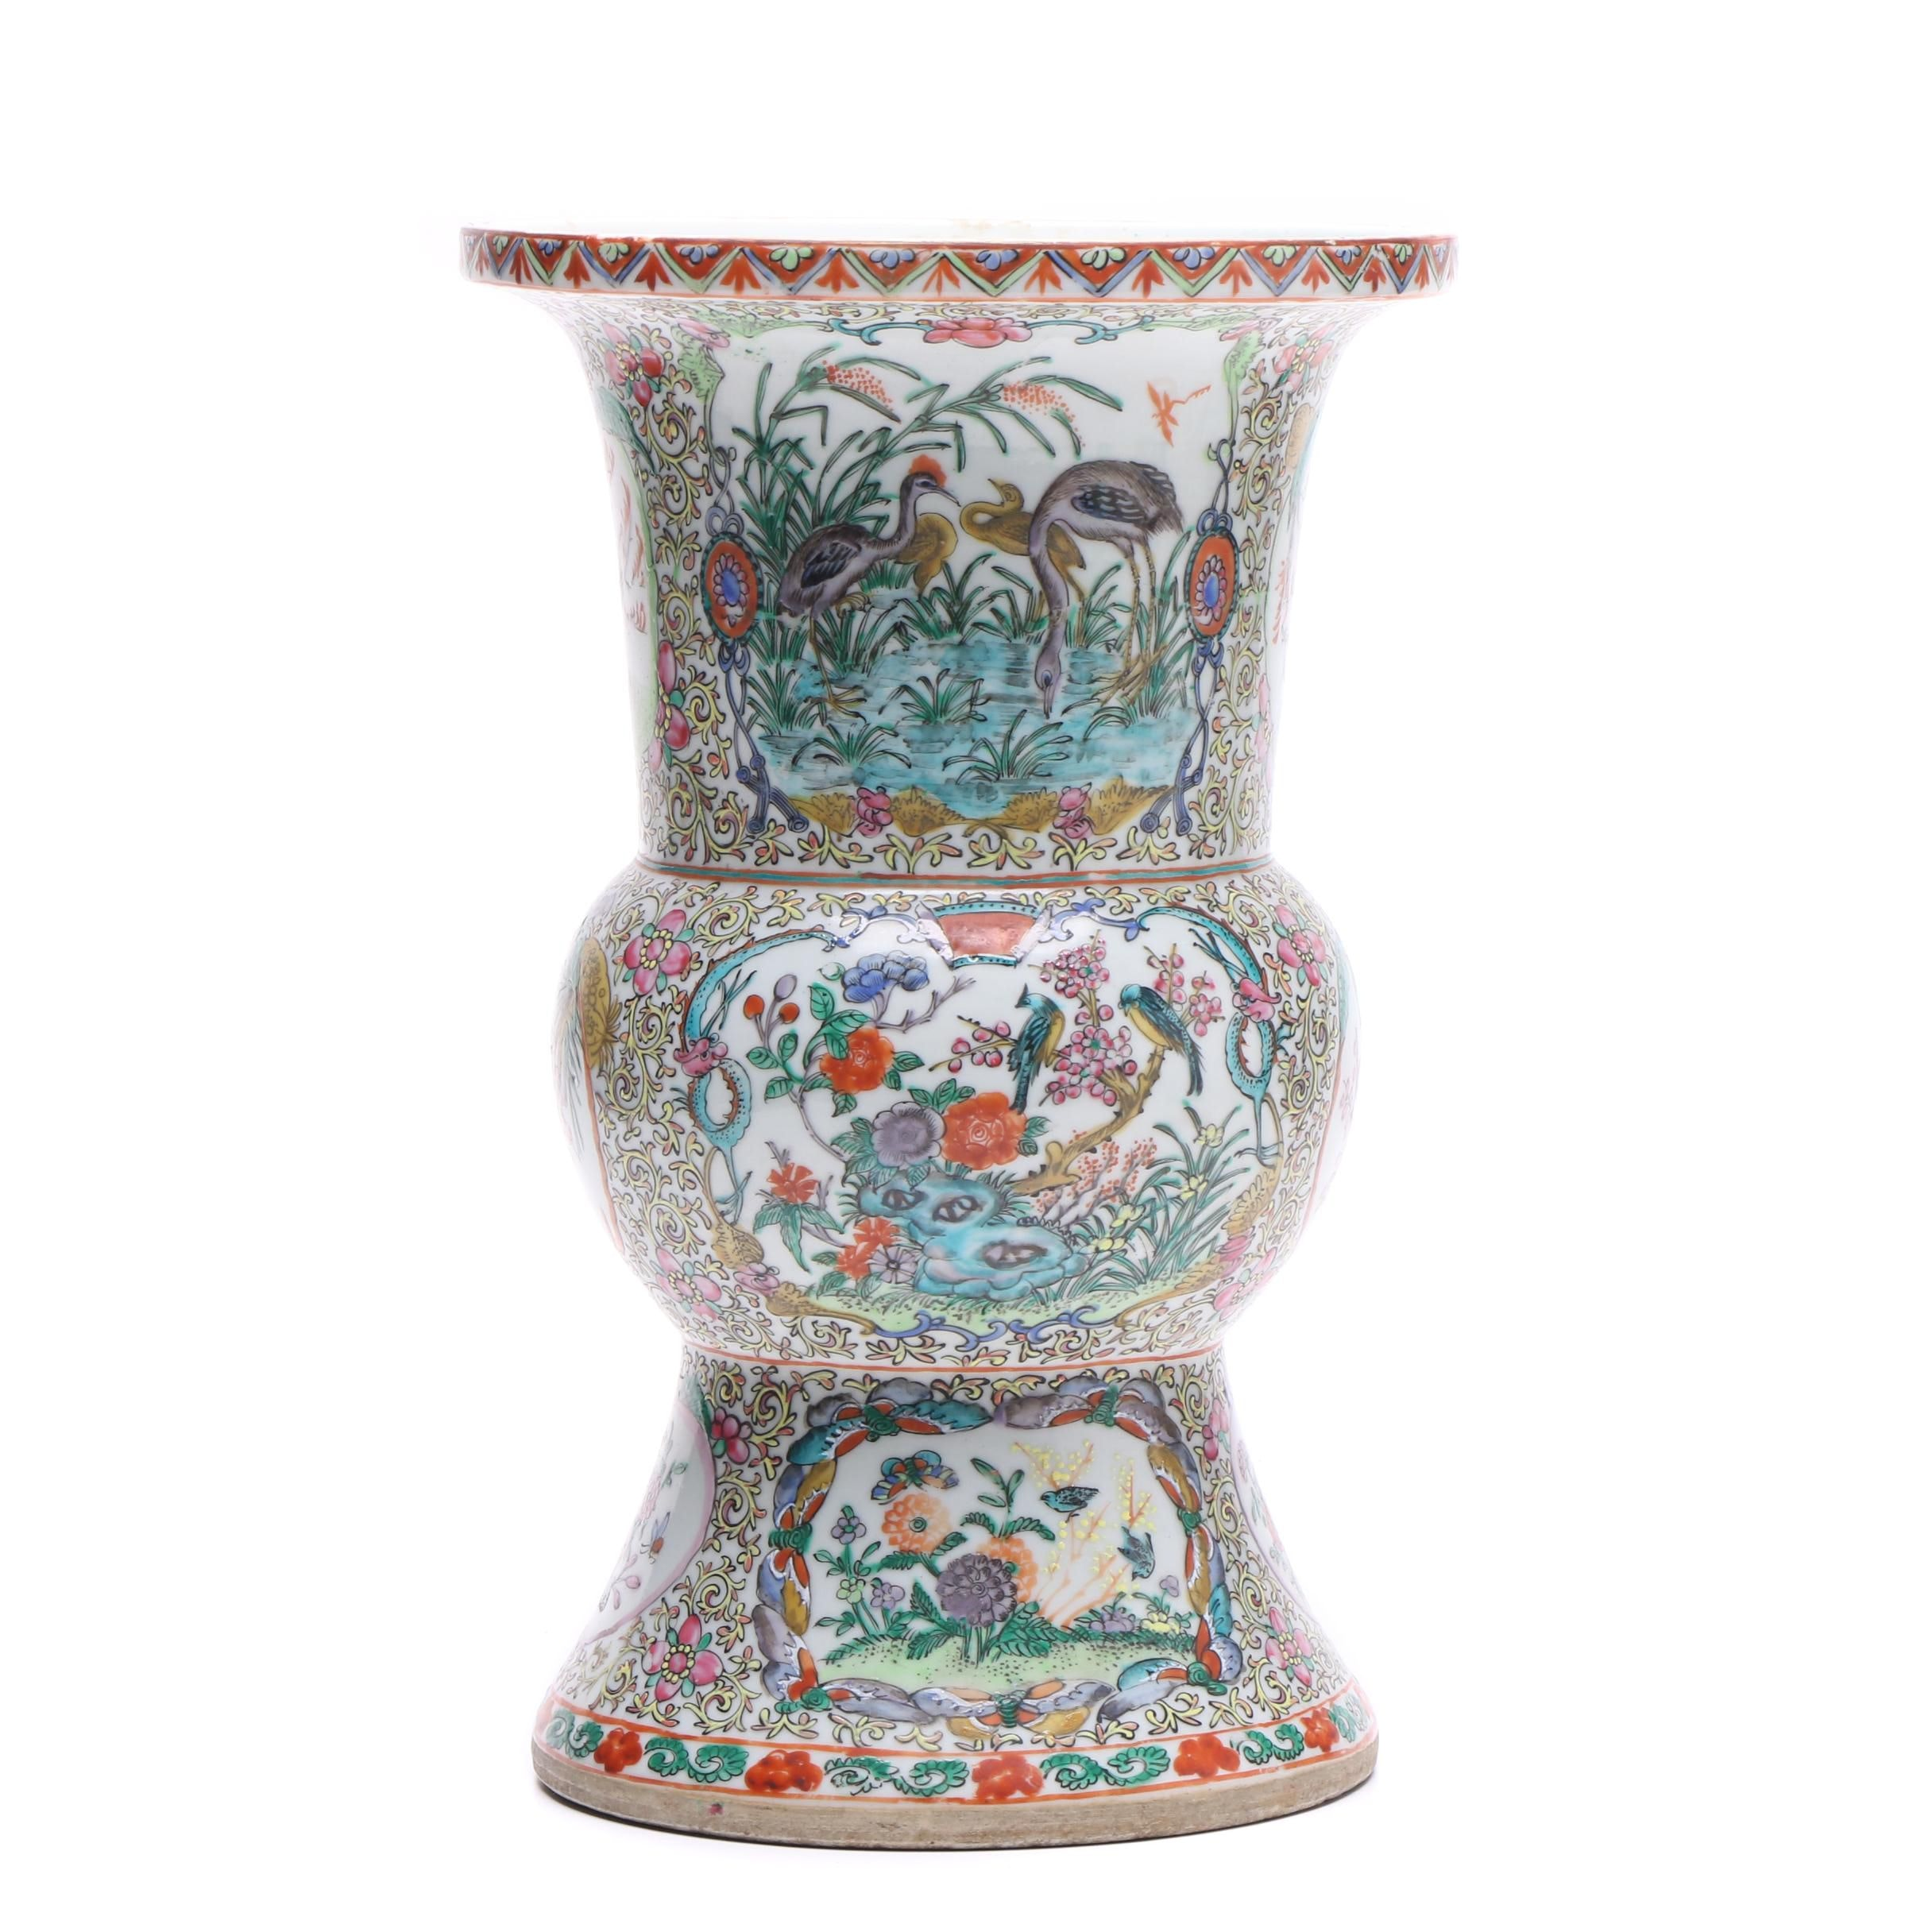 Chinese Hand Painted Porcelain Gu Vase Decorated with Flowers and Birds